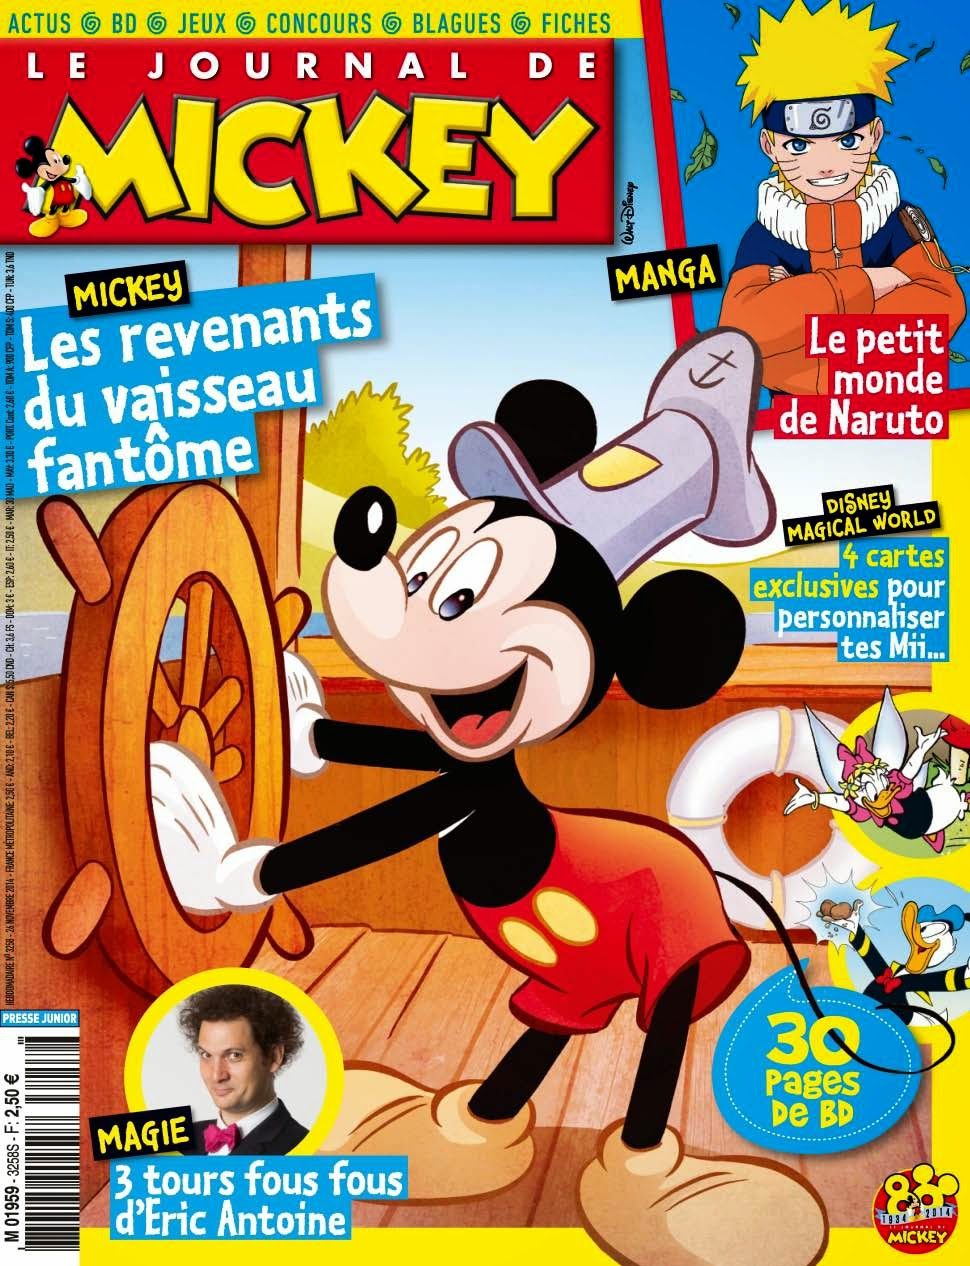 le journal de mickey journal de mickey 3258. Black Bedroom Furniture Sets. Home Design Ideas